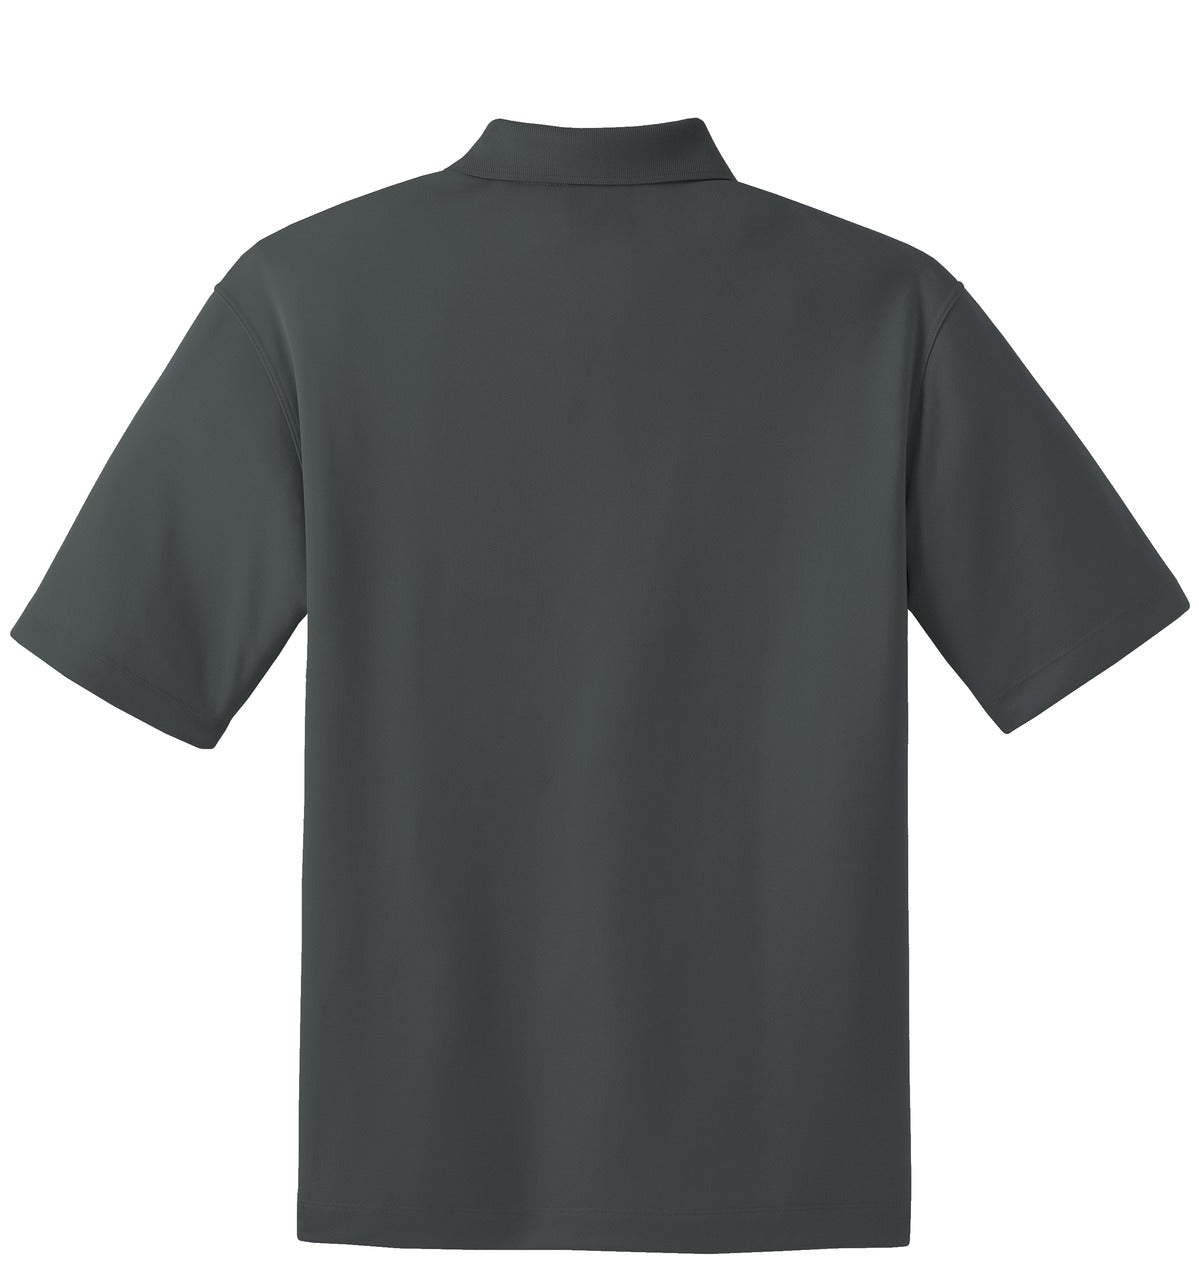 Anthracite Nike Tall Dri-FIT Micro Pique Polo.